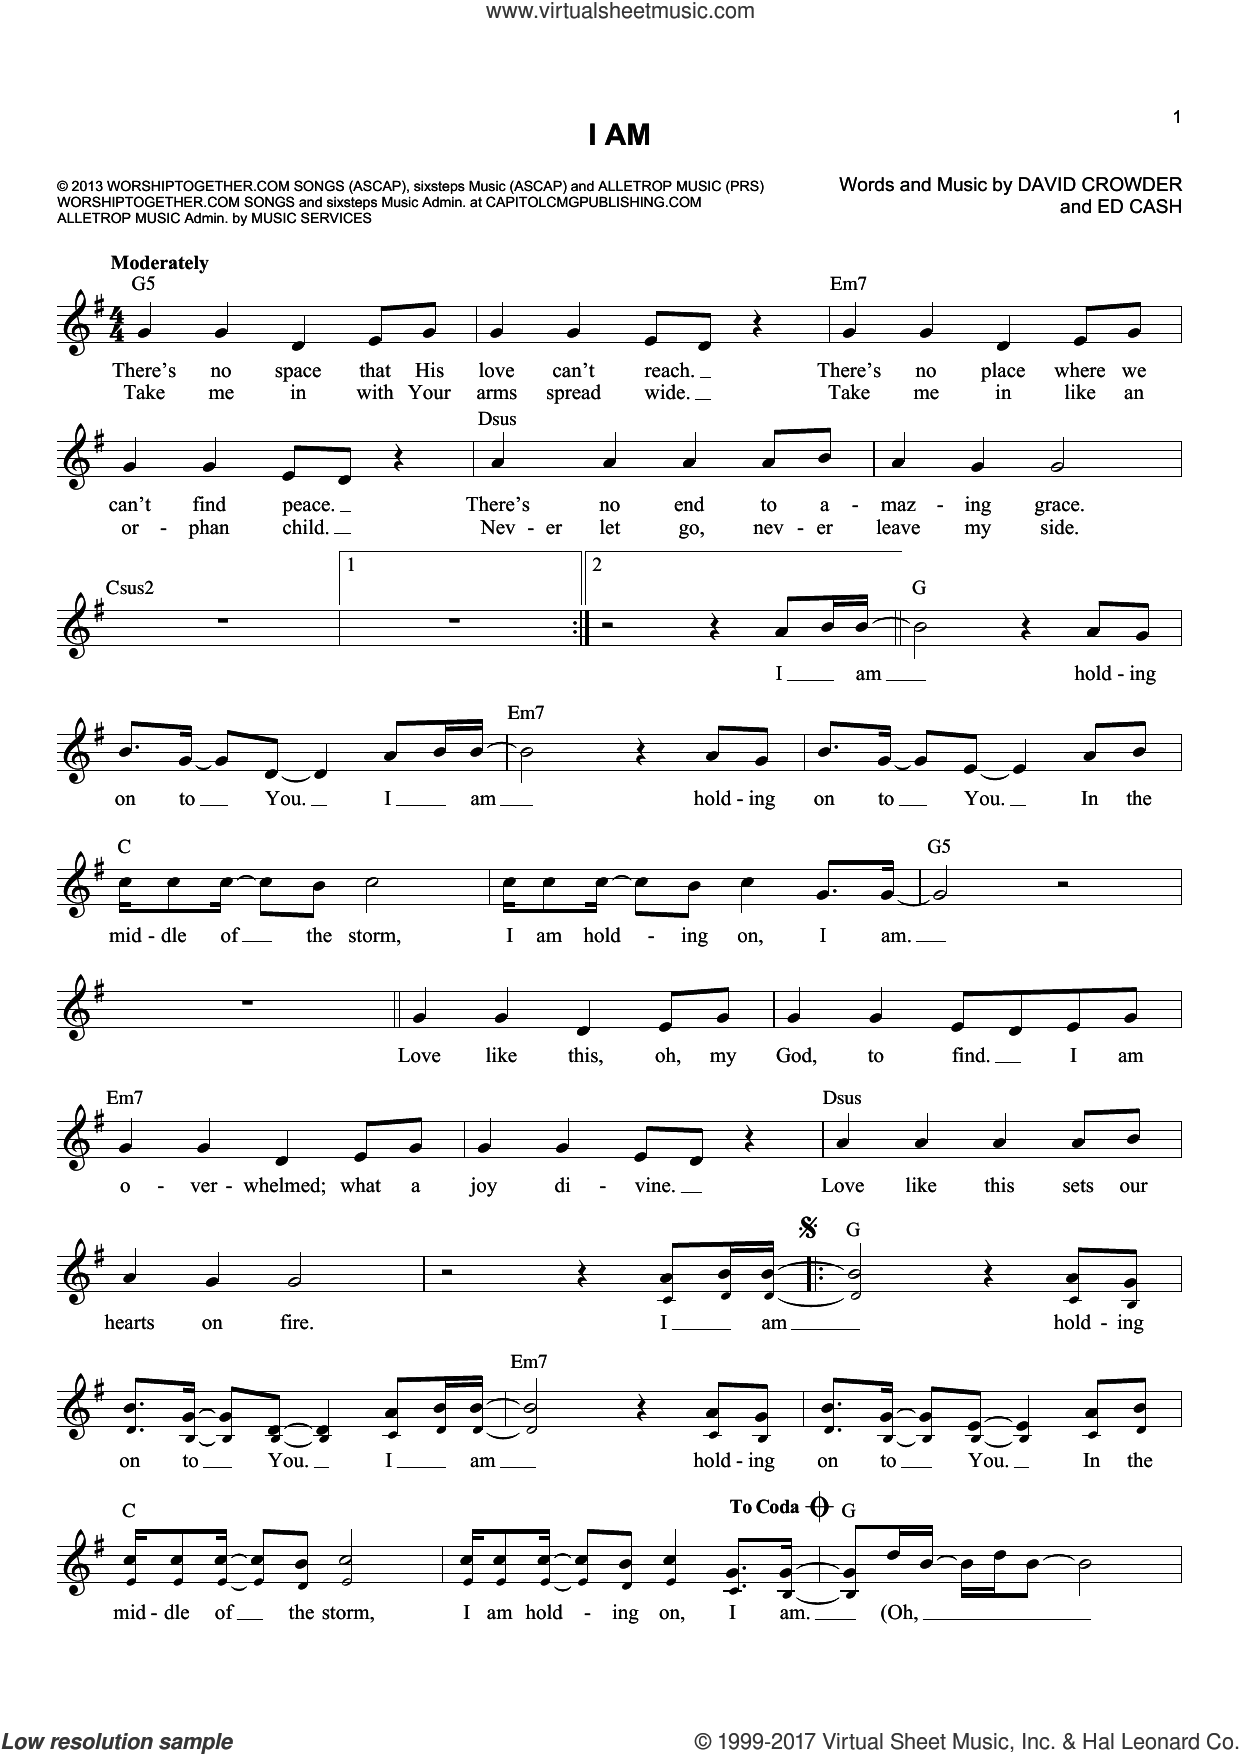 I Am sheet music for voice and other instruments (fake book) by Ed Cash and David Crowder. Score Image Preview.